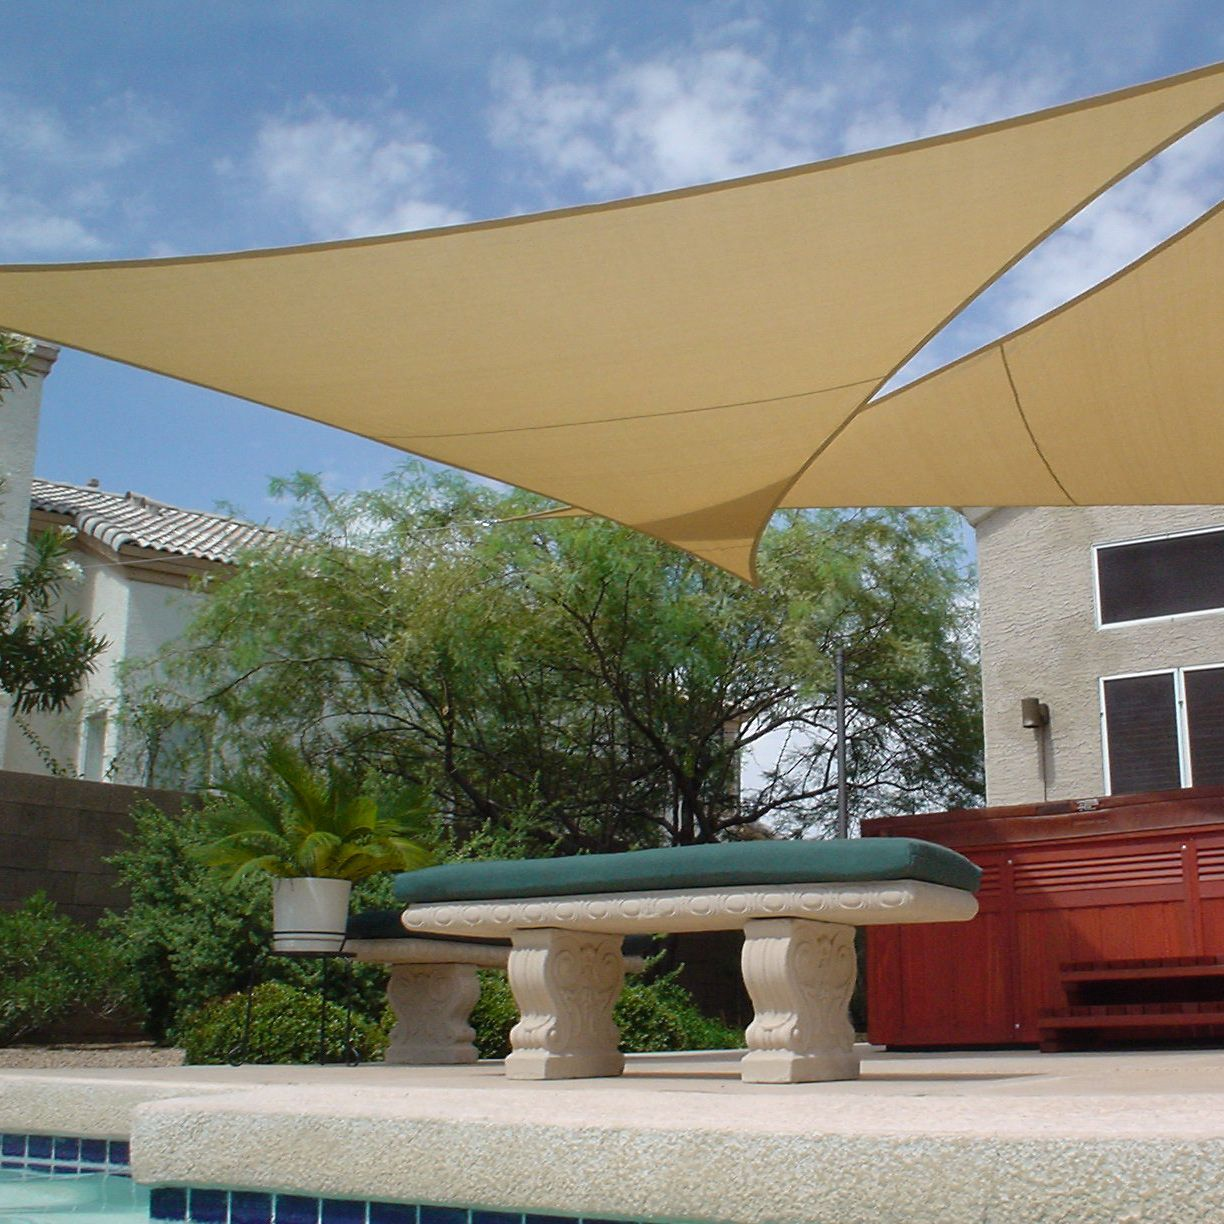 Shade Sail Triangle 11u002710 & Shade Sail Triangle 11u002710 | Garage Top Dreams | Pinterest ...